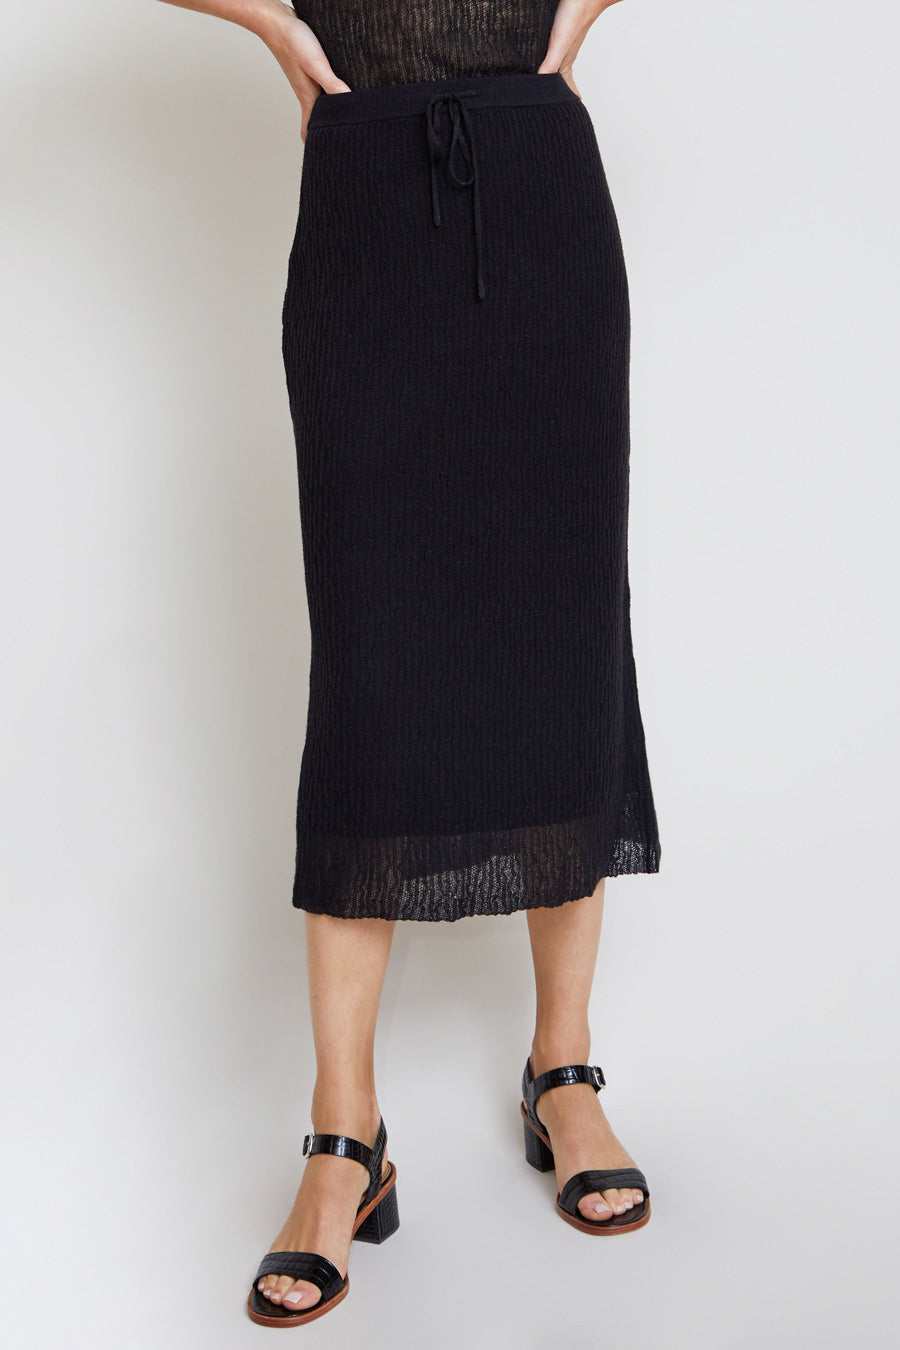 Kallmeyer Knit Micropleat Drawstring Skirt in Black